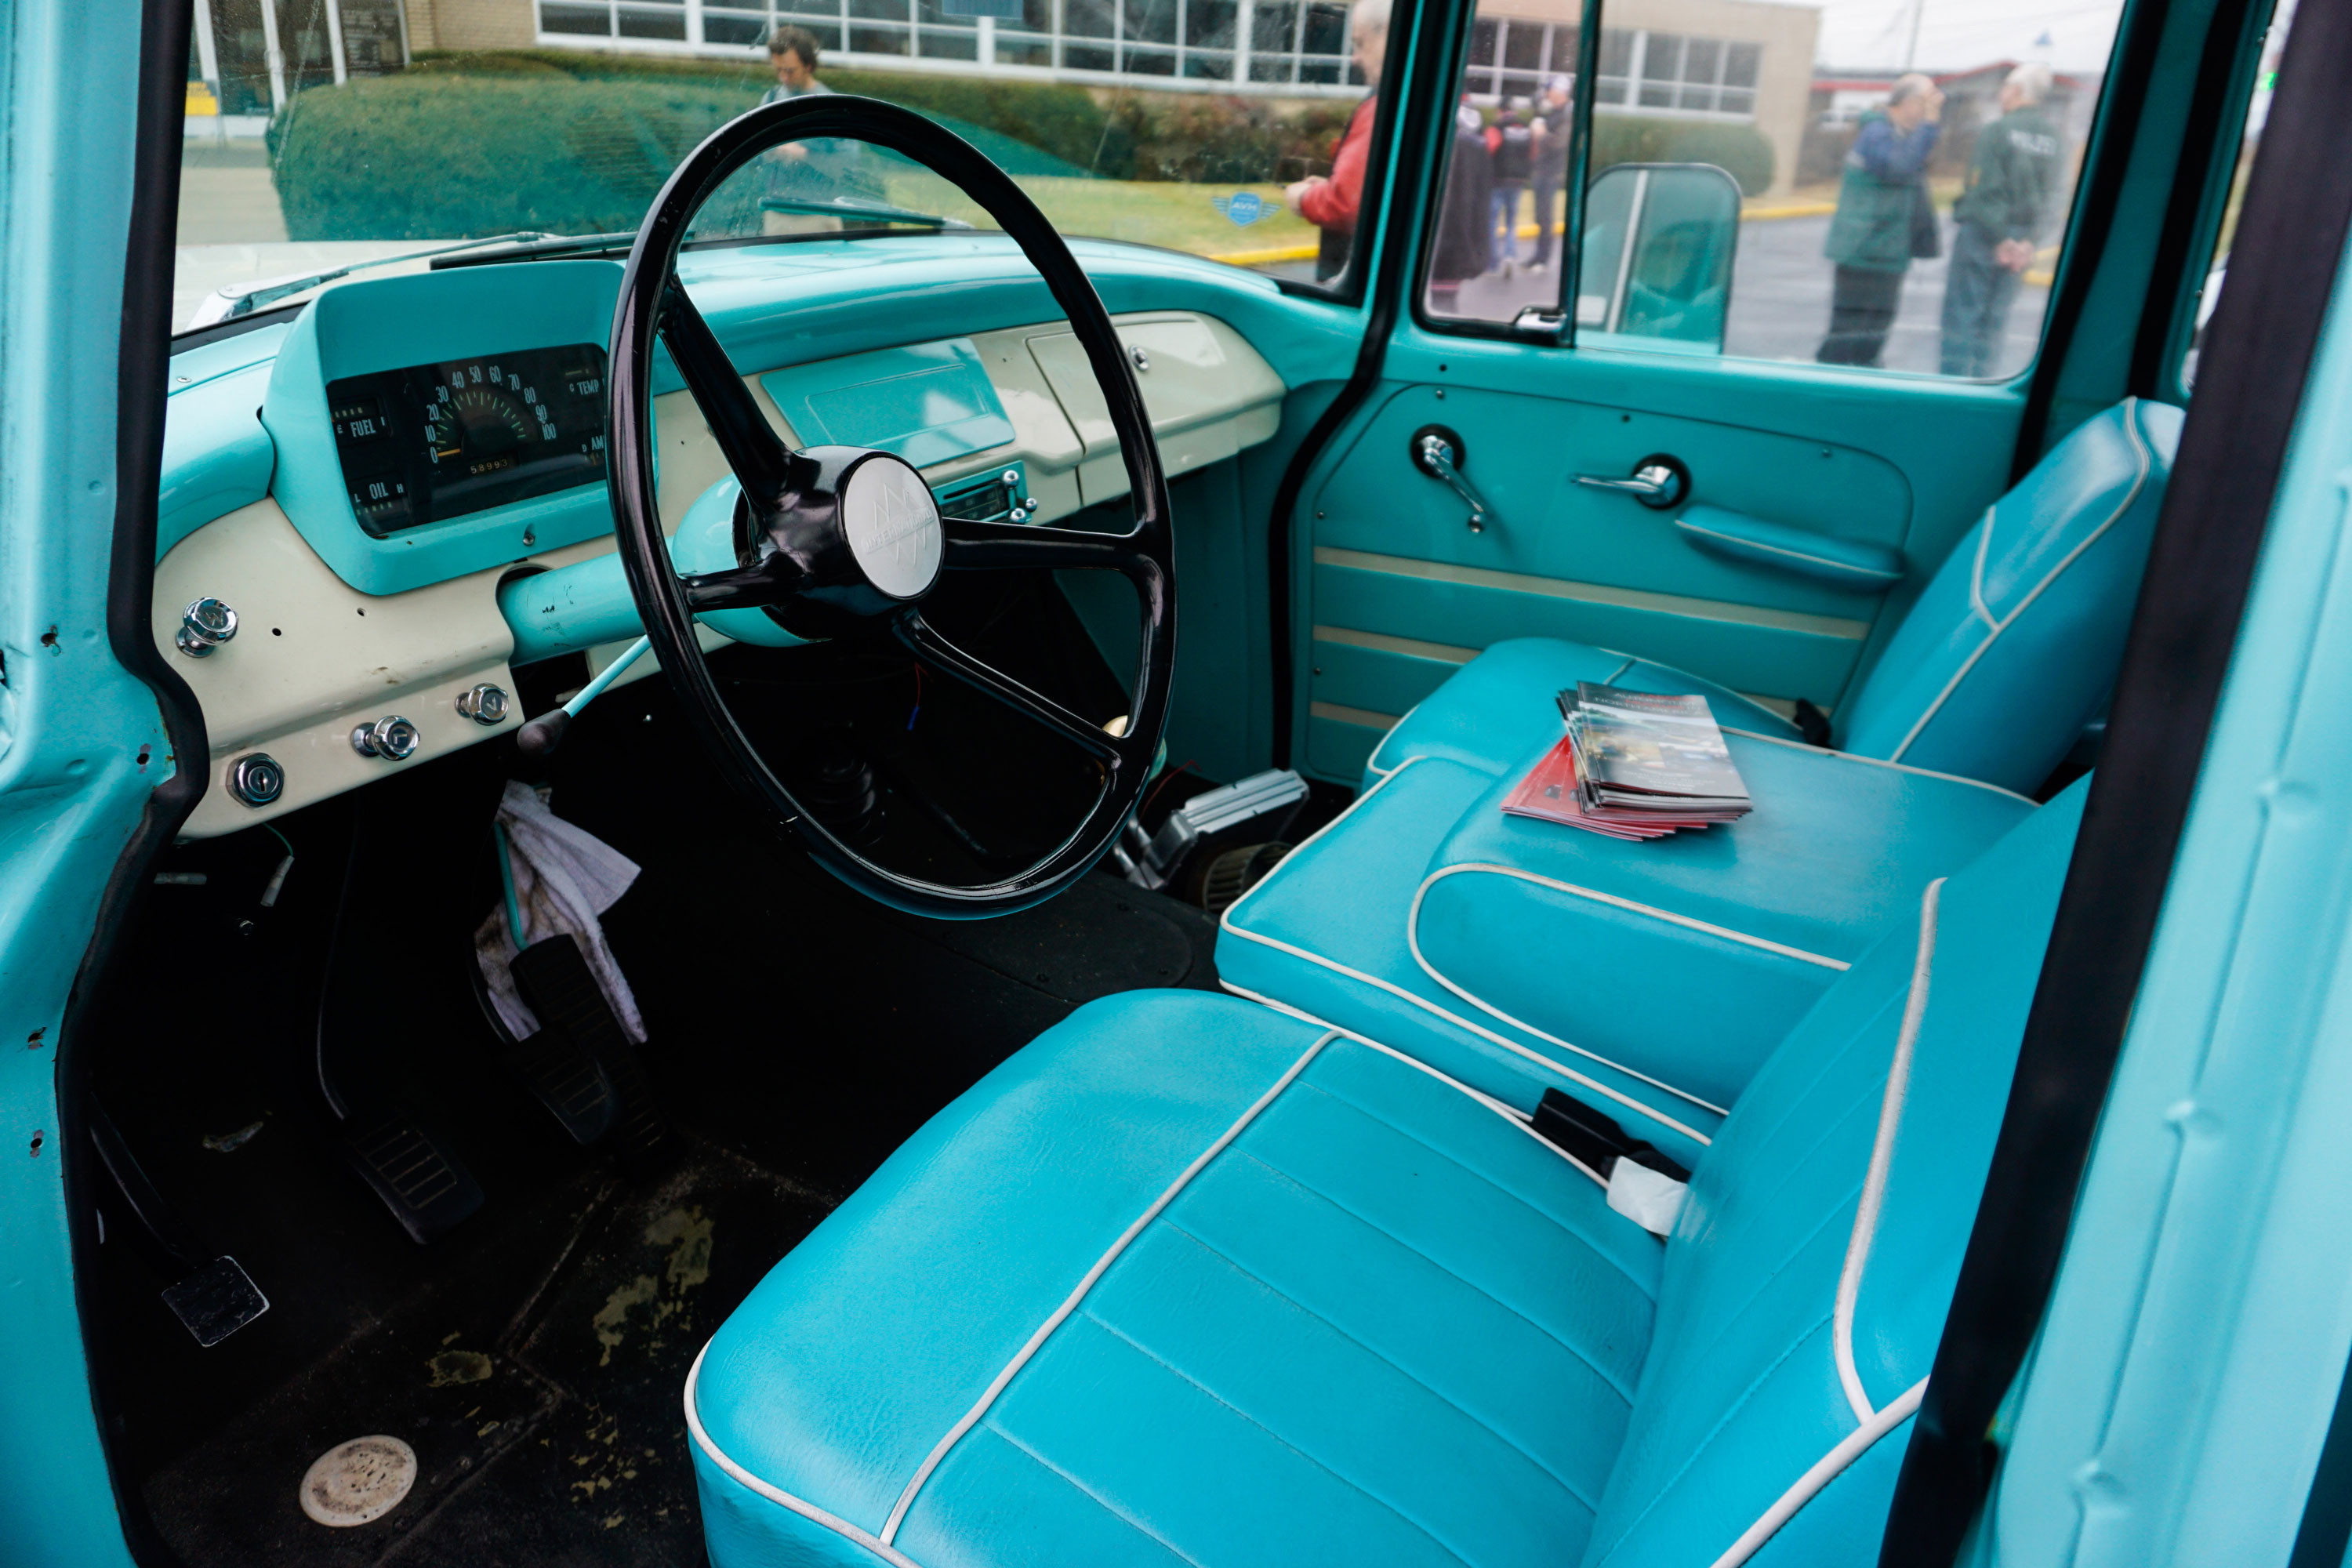 1962 International Travelette pick up interior photo